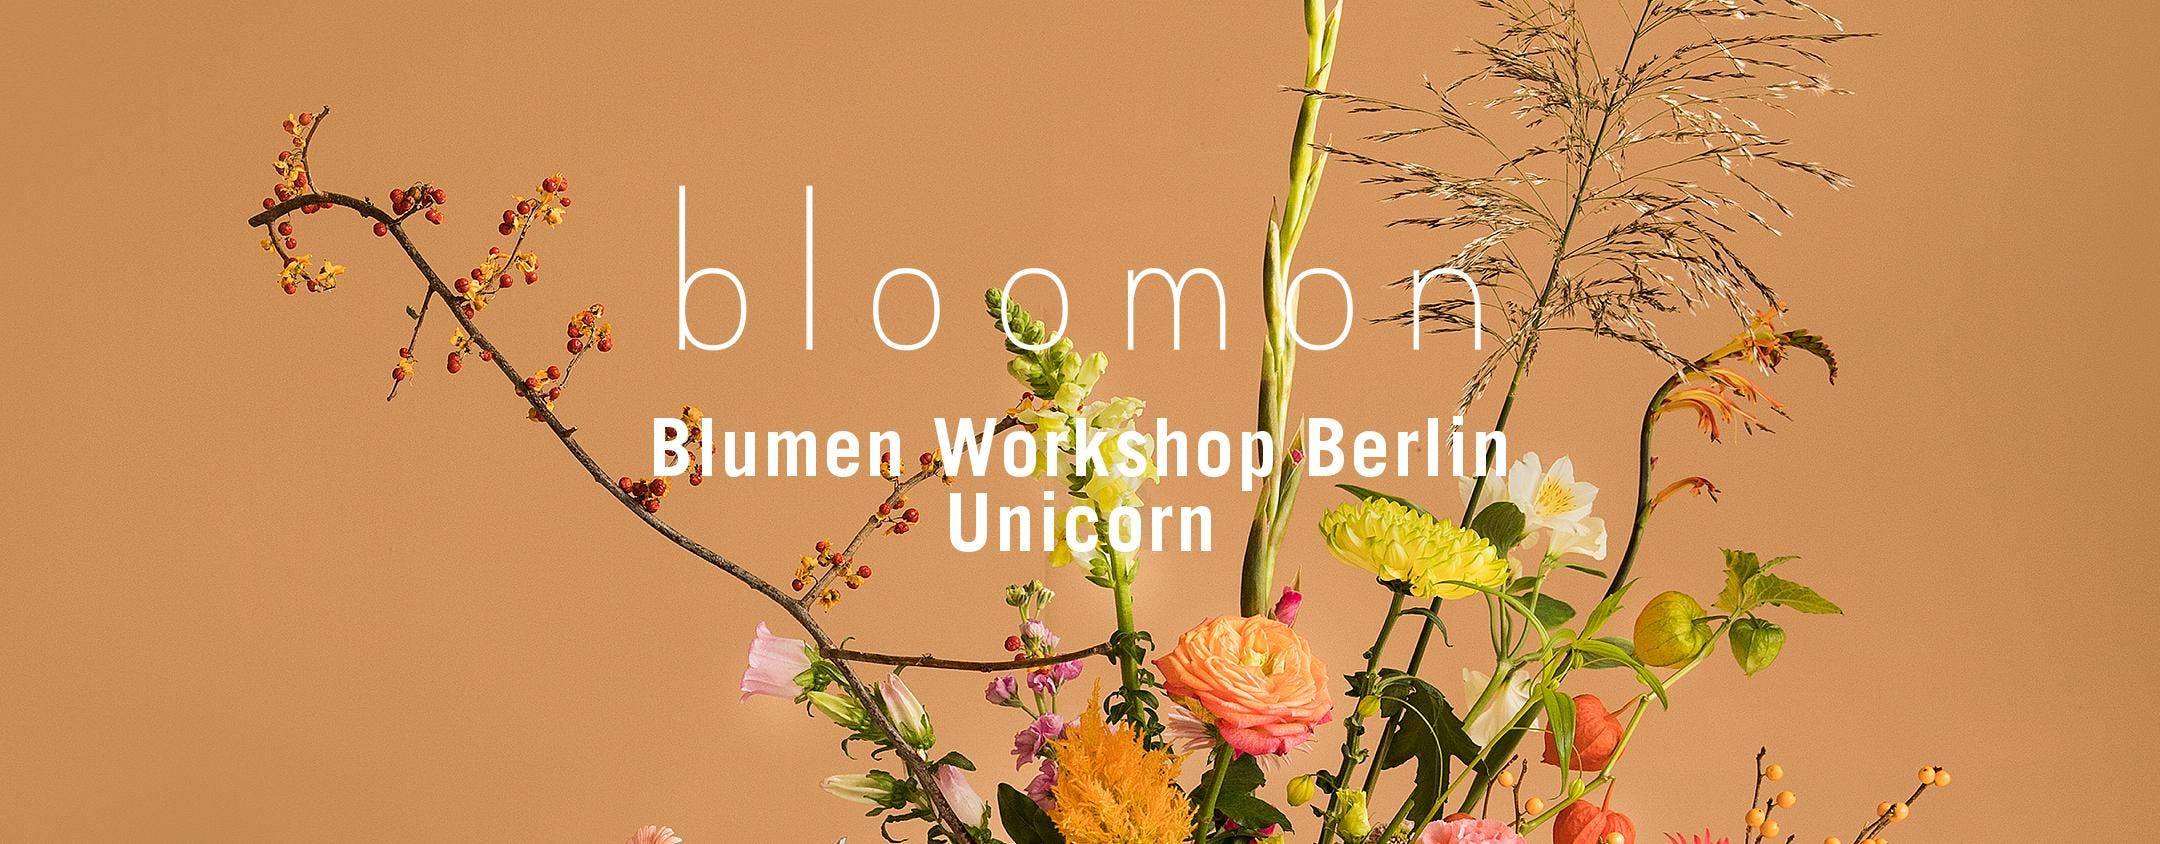 bloomon Workshop 20. September | Berlin, unic